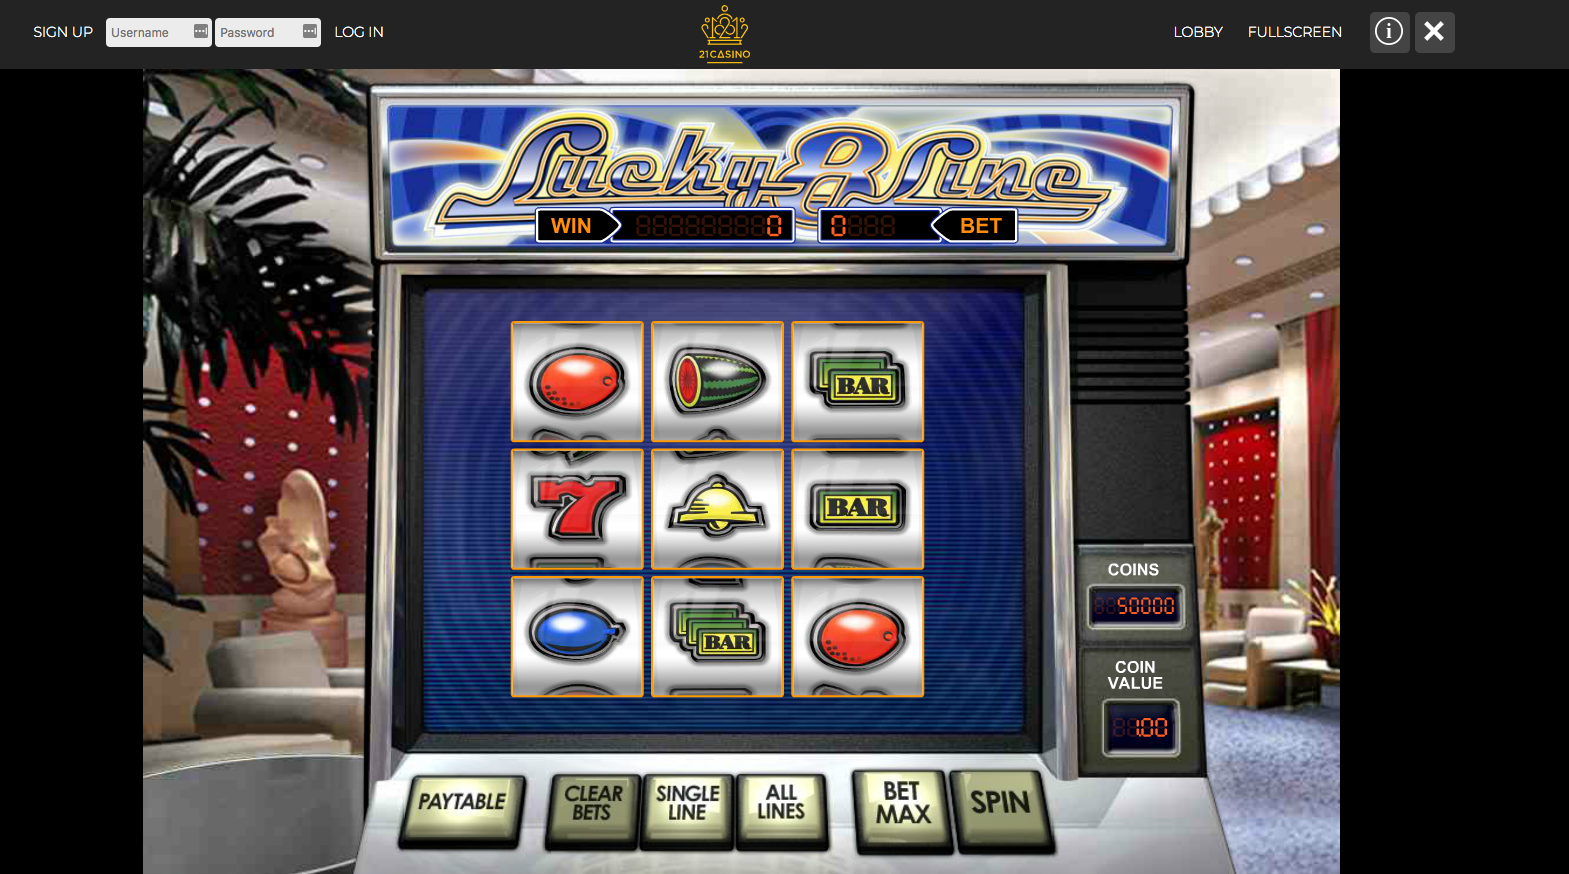 Lucky 8 Line slots at 21 Casino - one a selection of great games